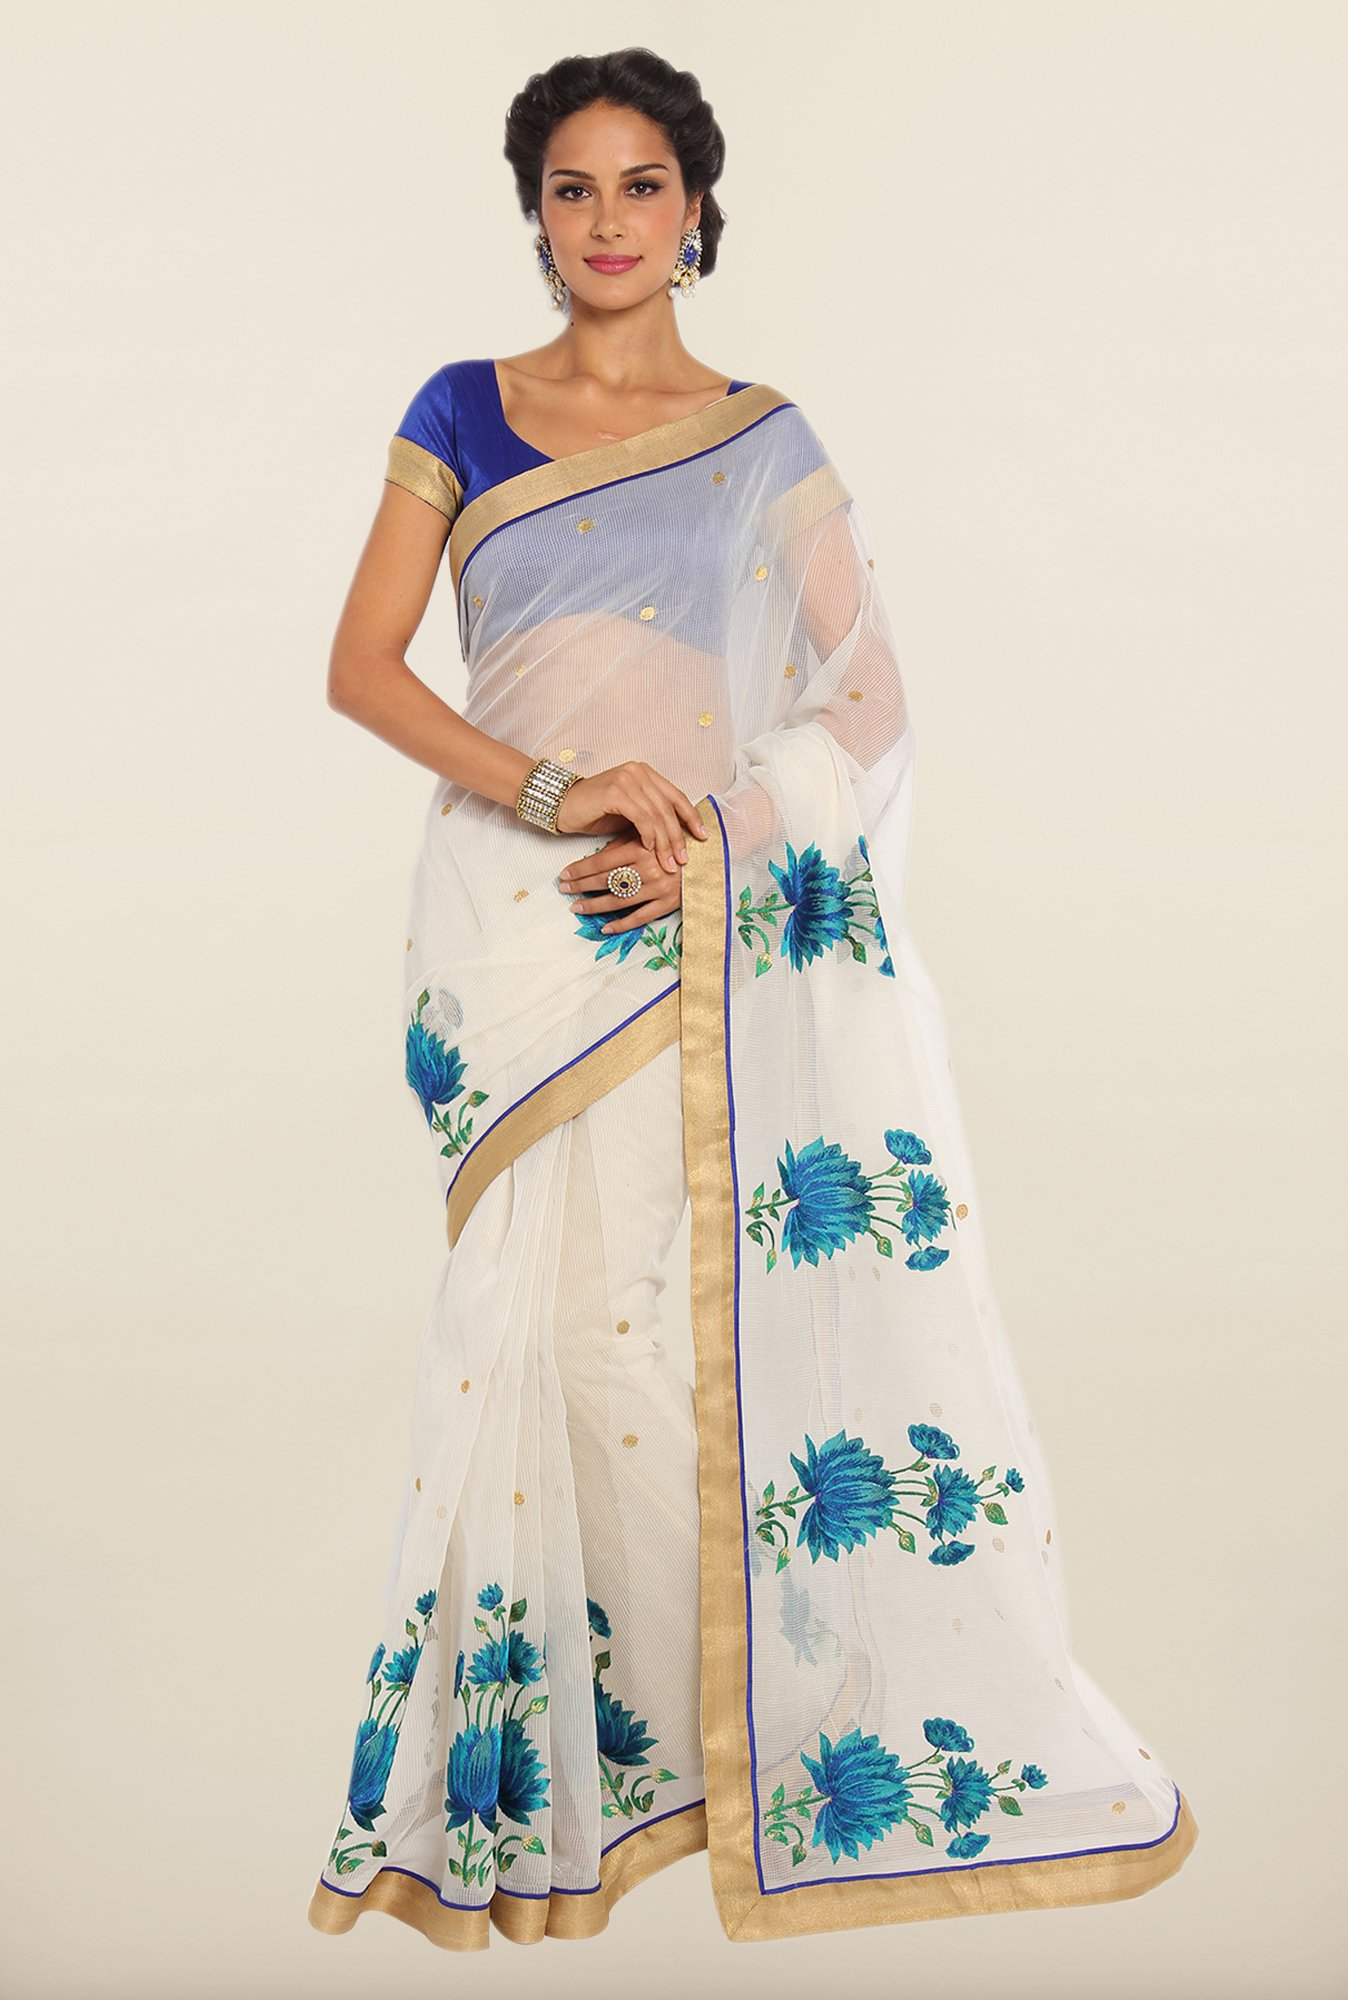 Soch Off-White & Blue Kota Saree